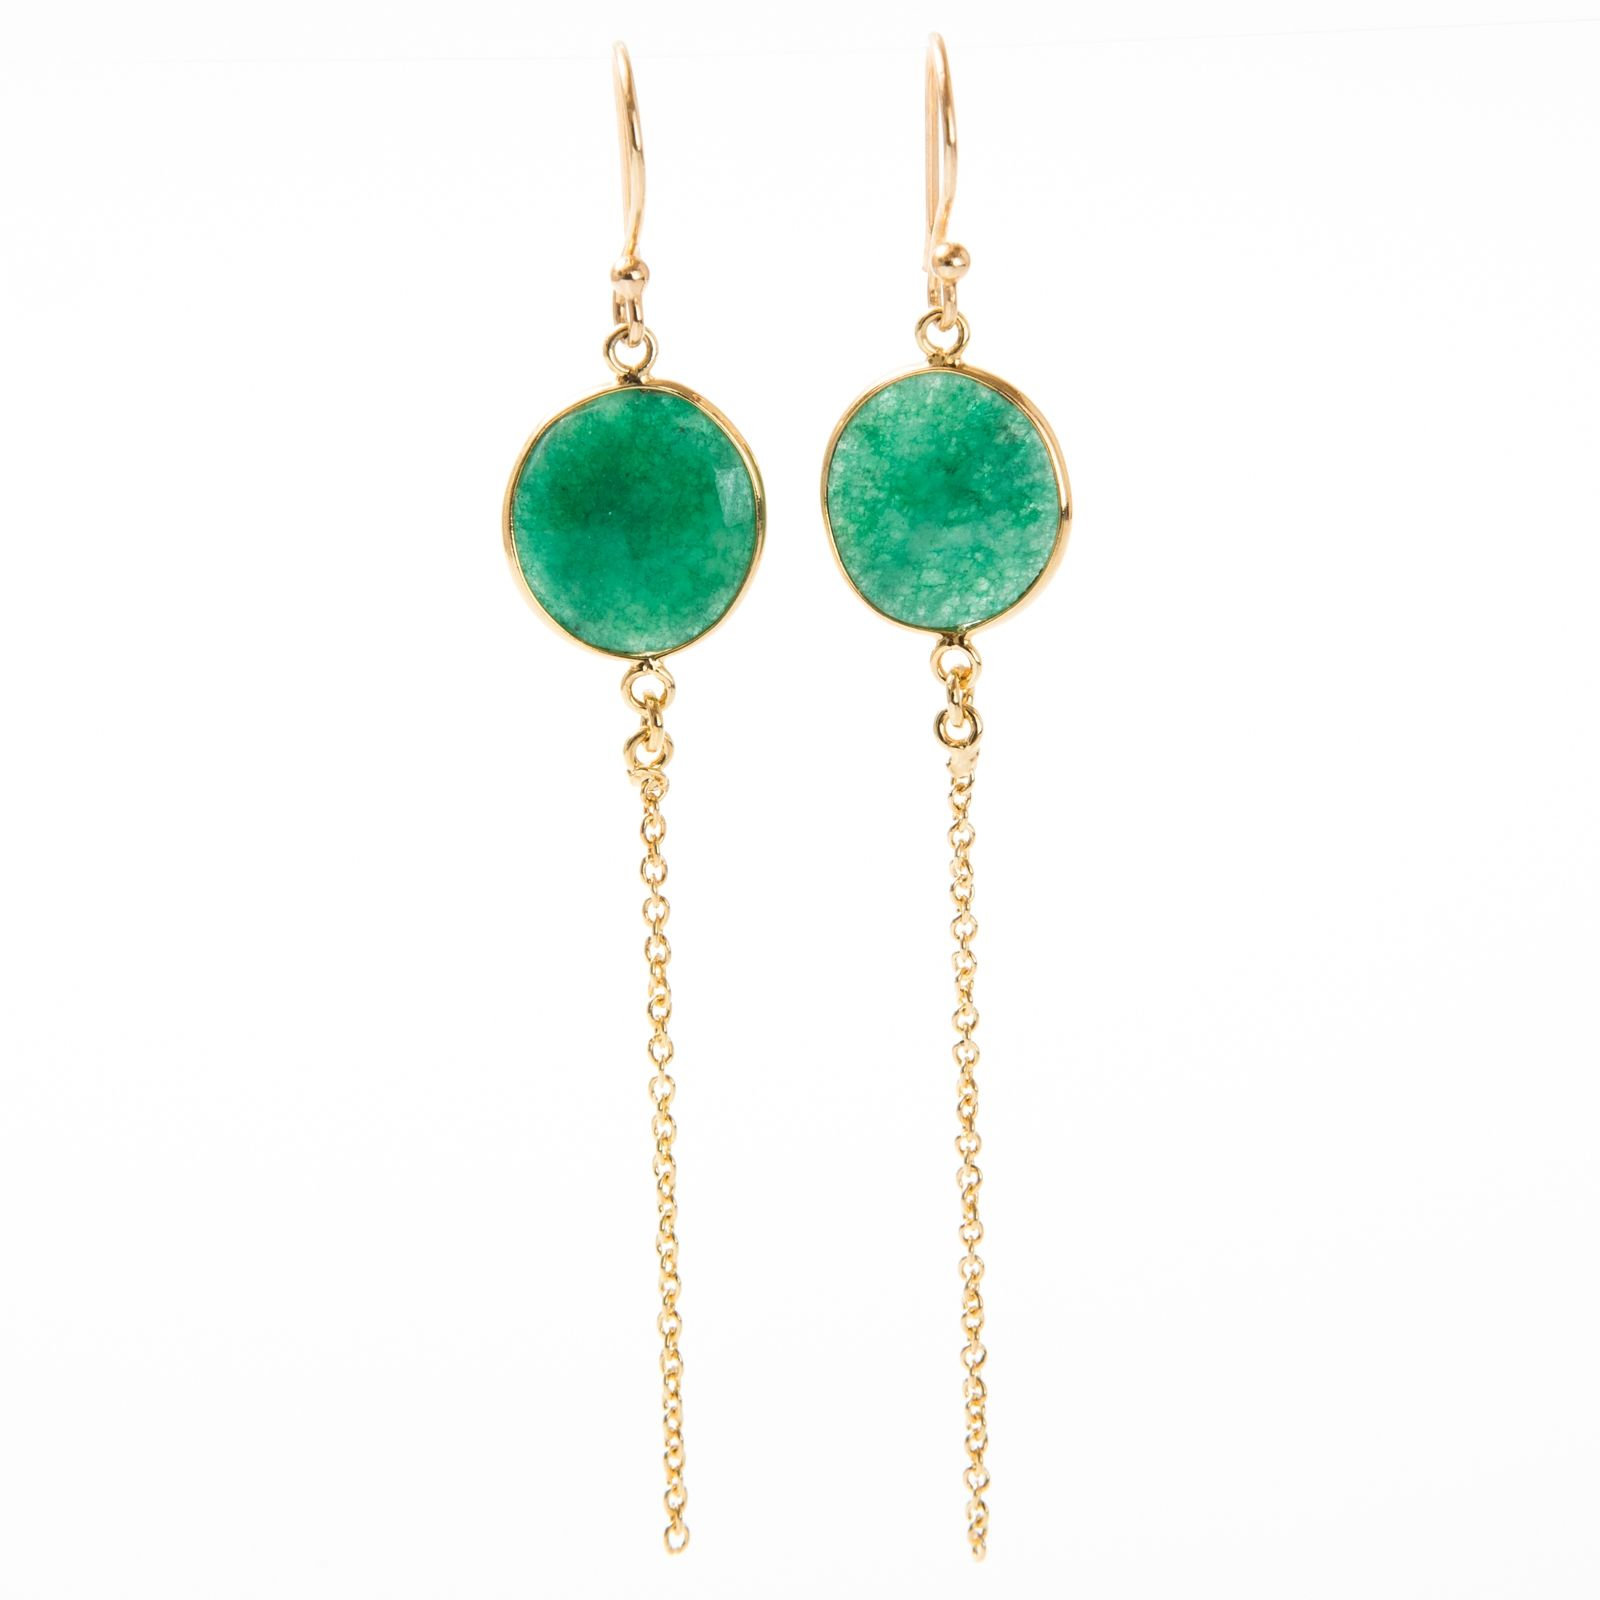 Vic vermeil earring with green onyx